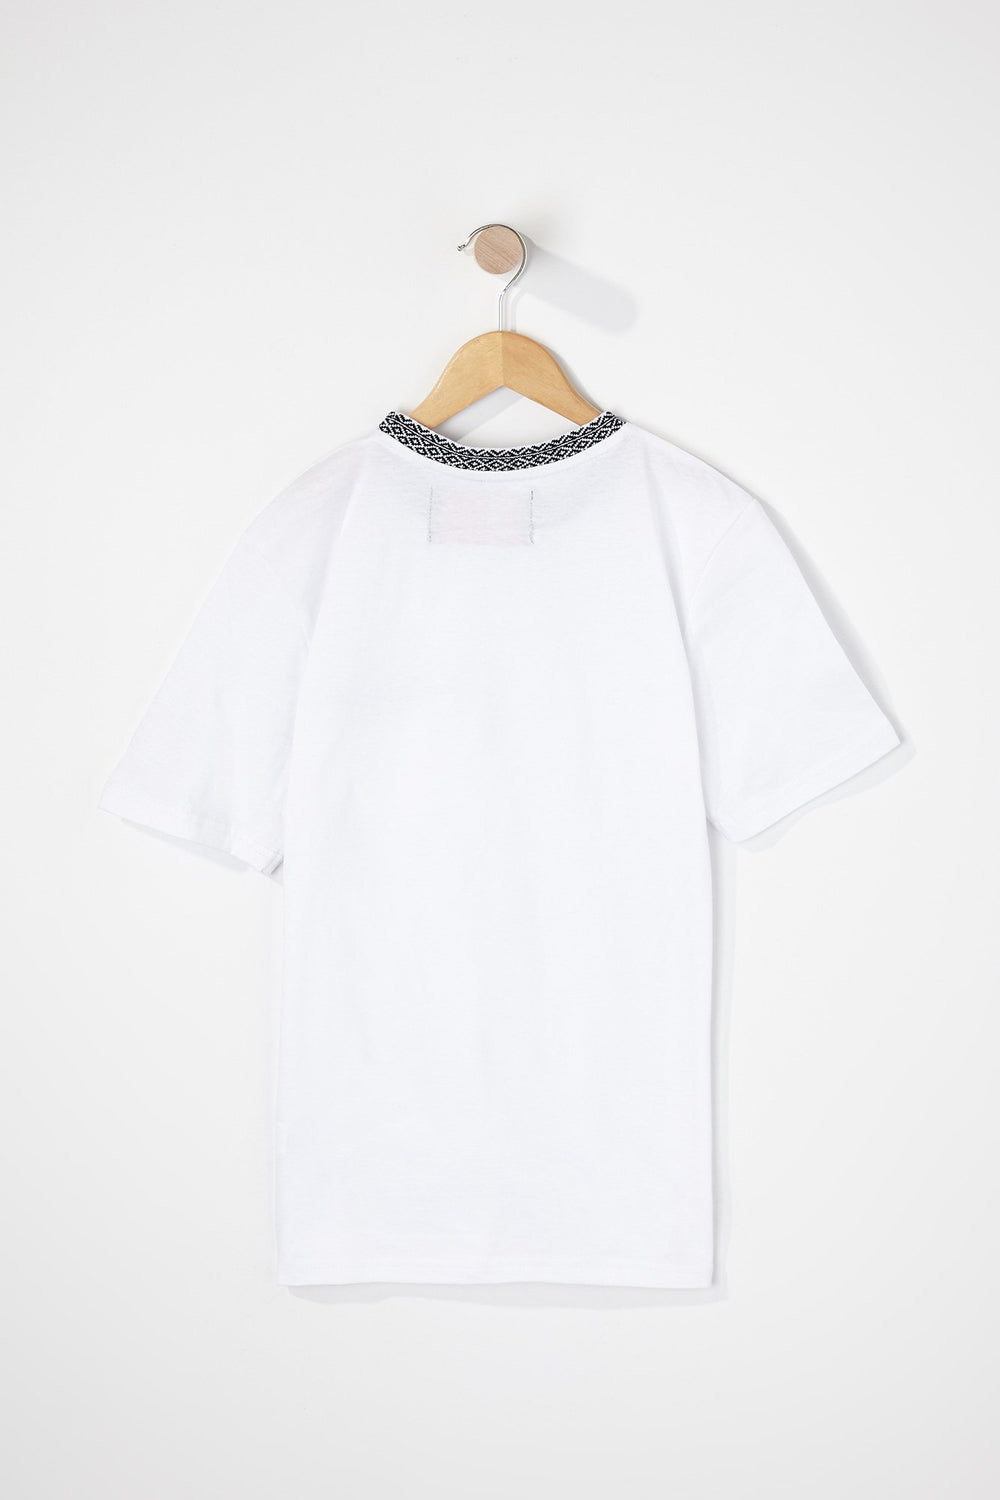 West49 Boys Contrast Pocket And Collar T-Shirt White